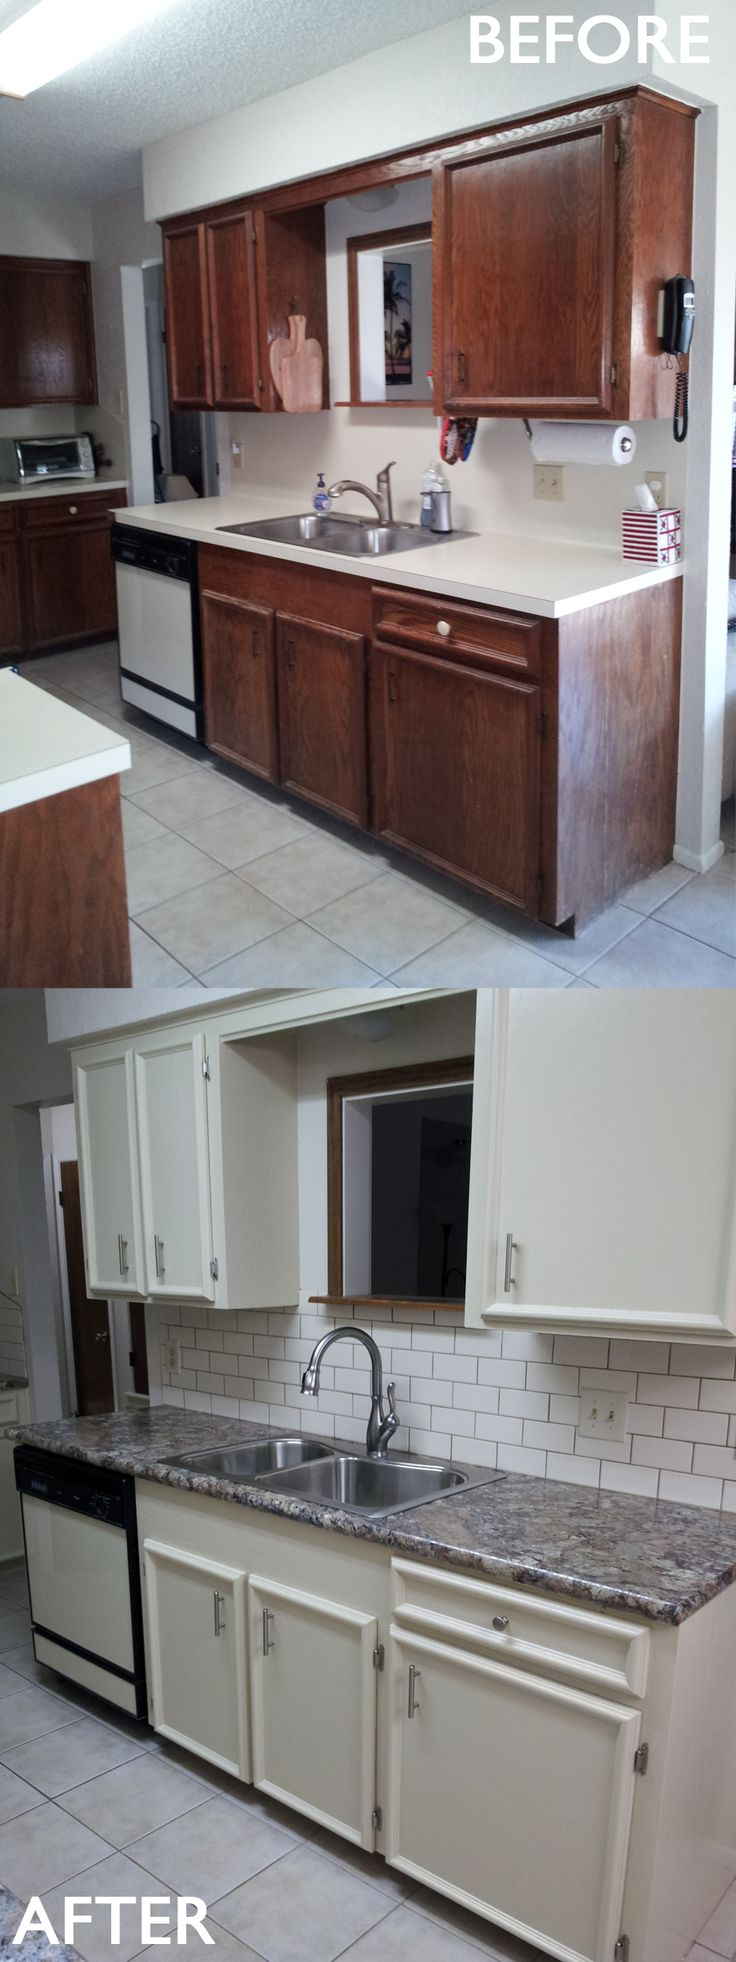 17 best images about before and after remodeling on for Before and after pictures of painted laminate kitchen cabinets